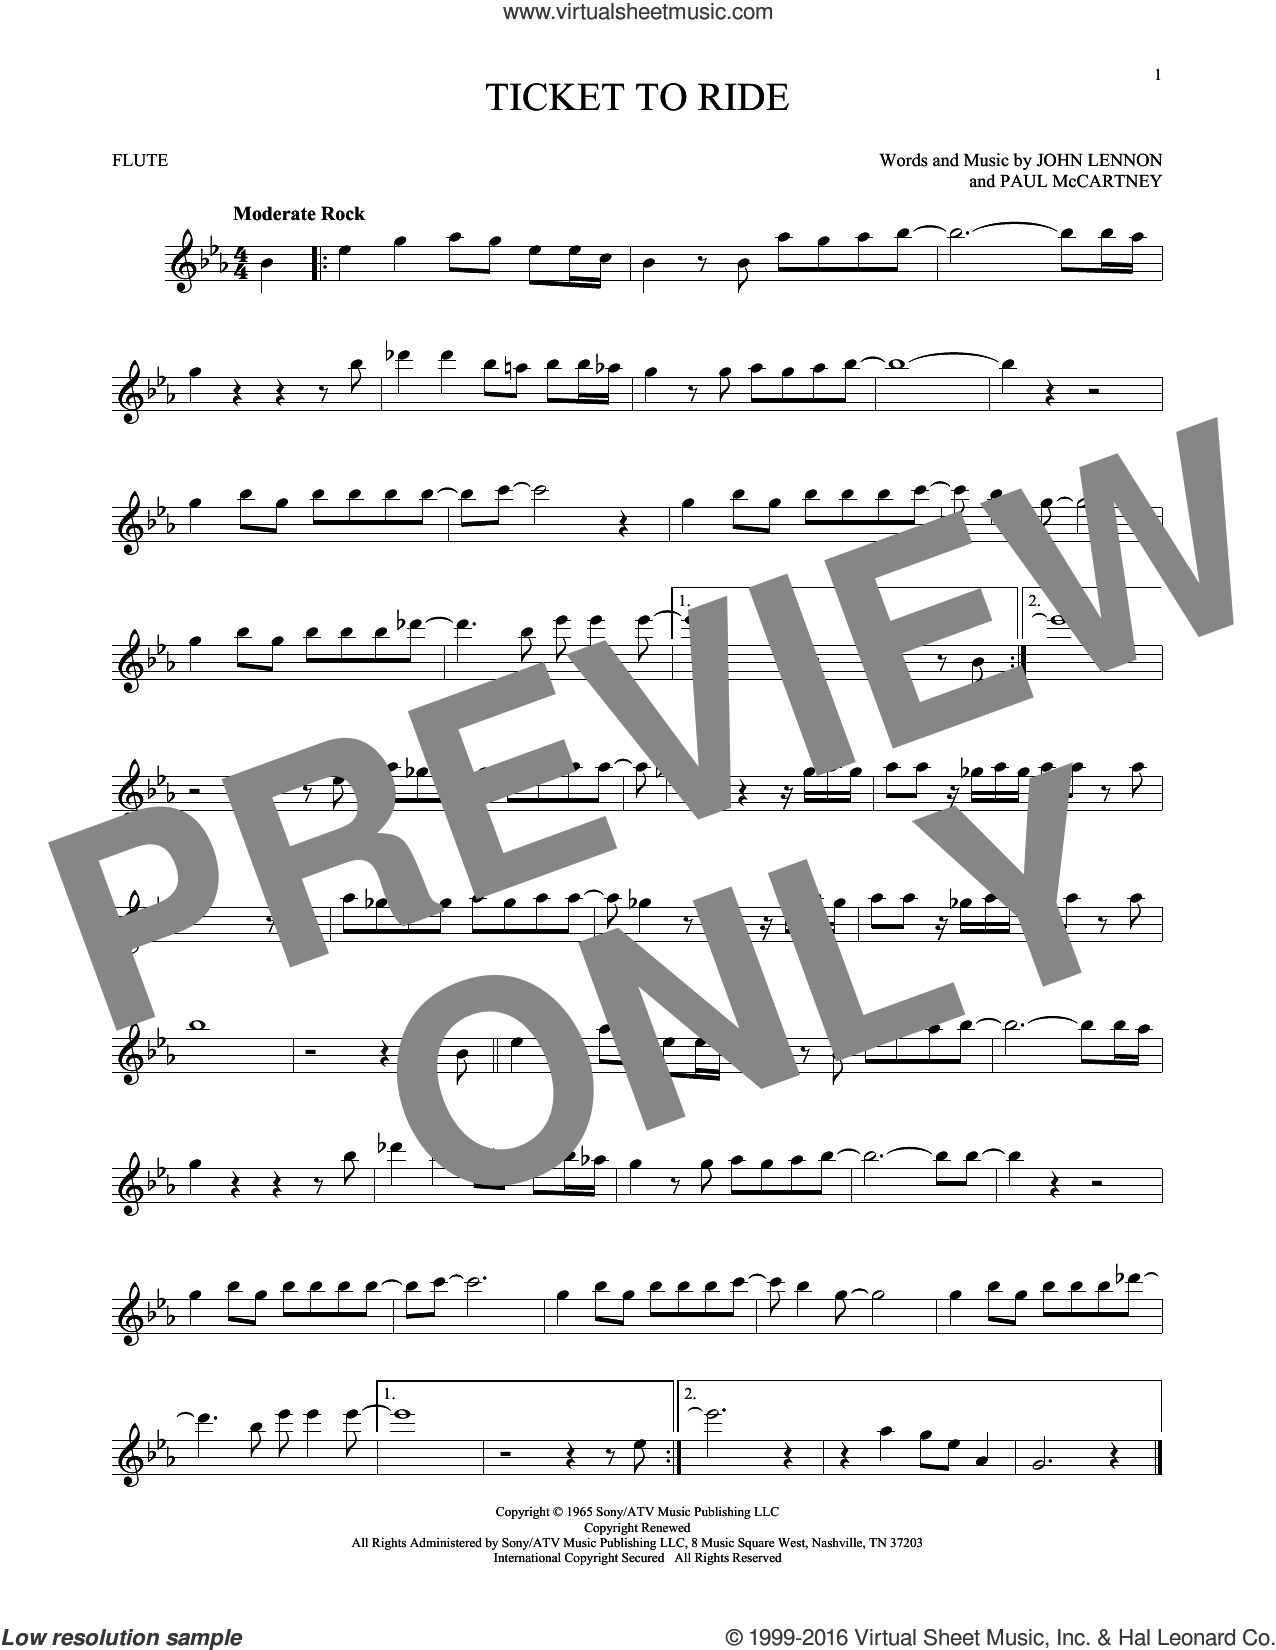 Ticket To Ride sheet music for flute solo by Paul McCartney